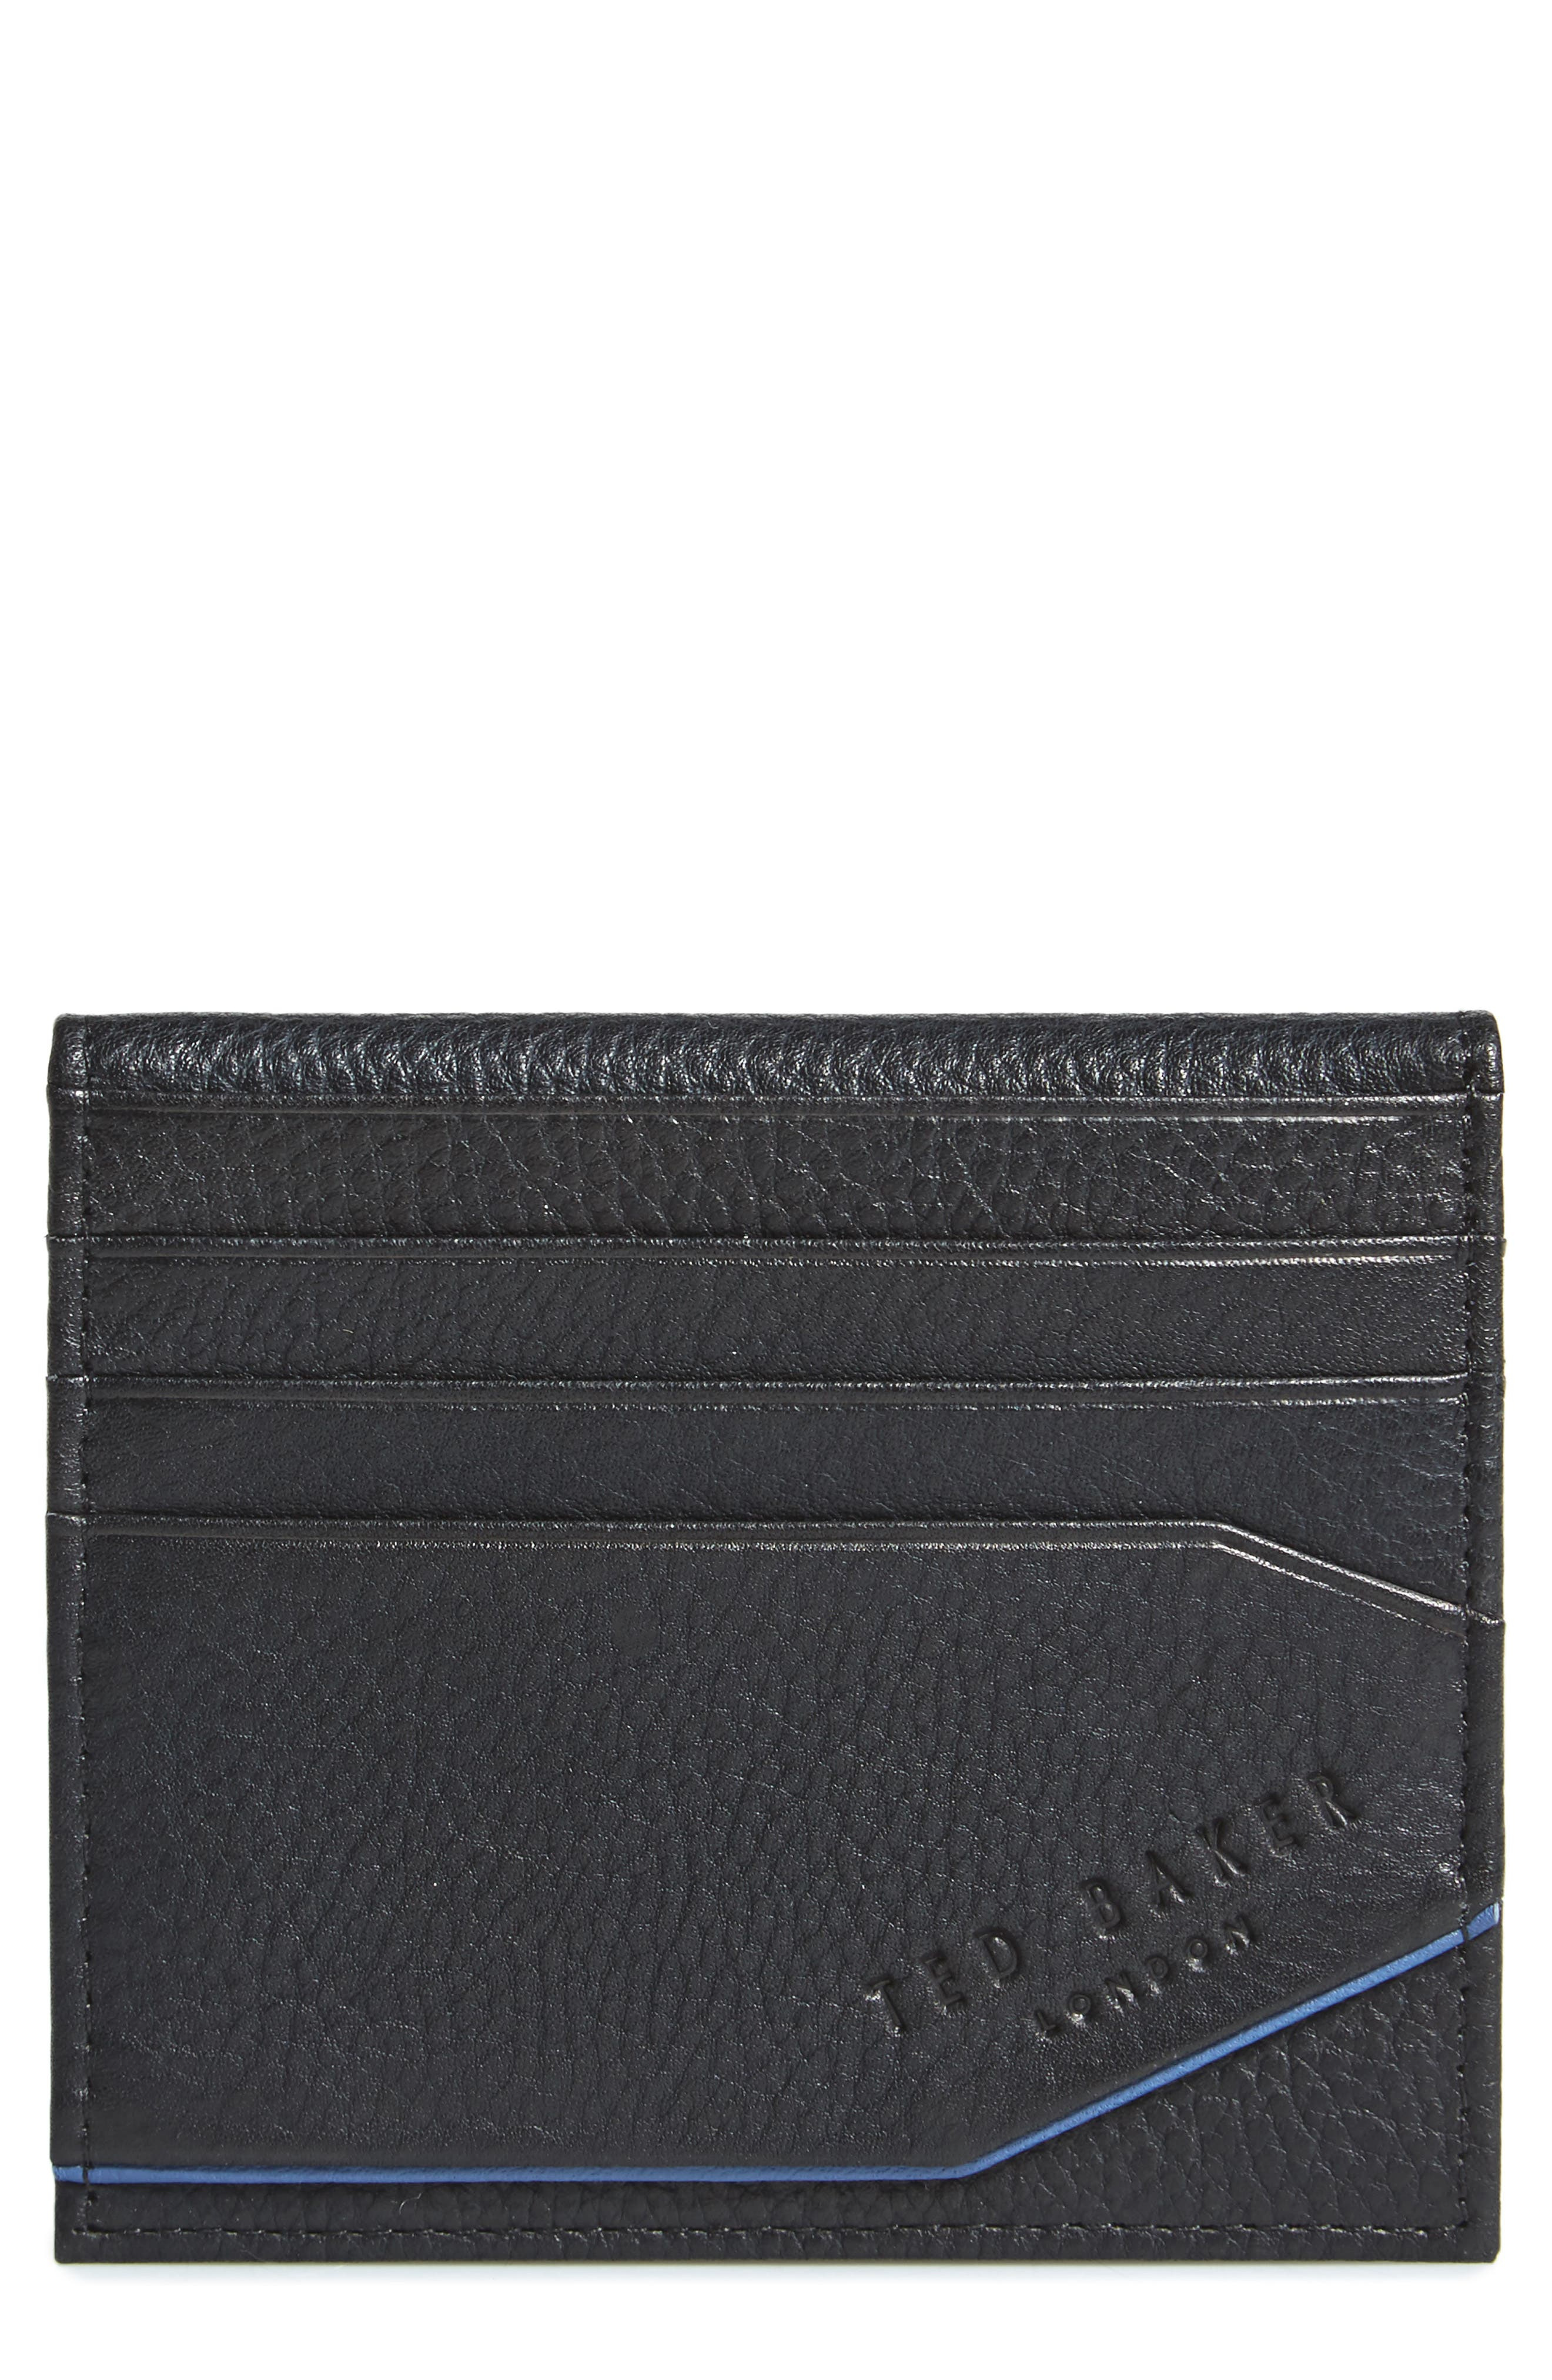 TED BAKER LONDON Pyuma Leather Card Case